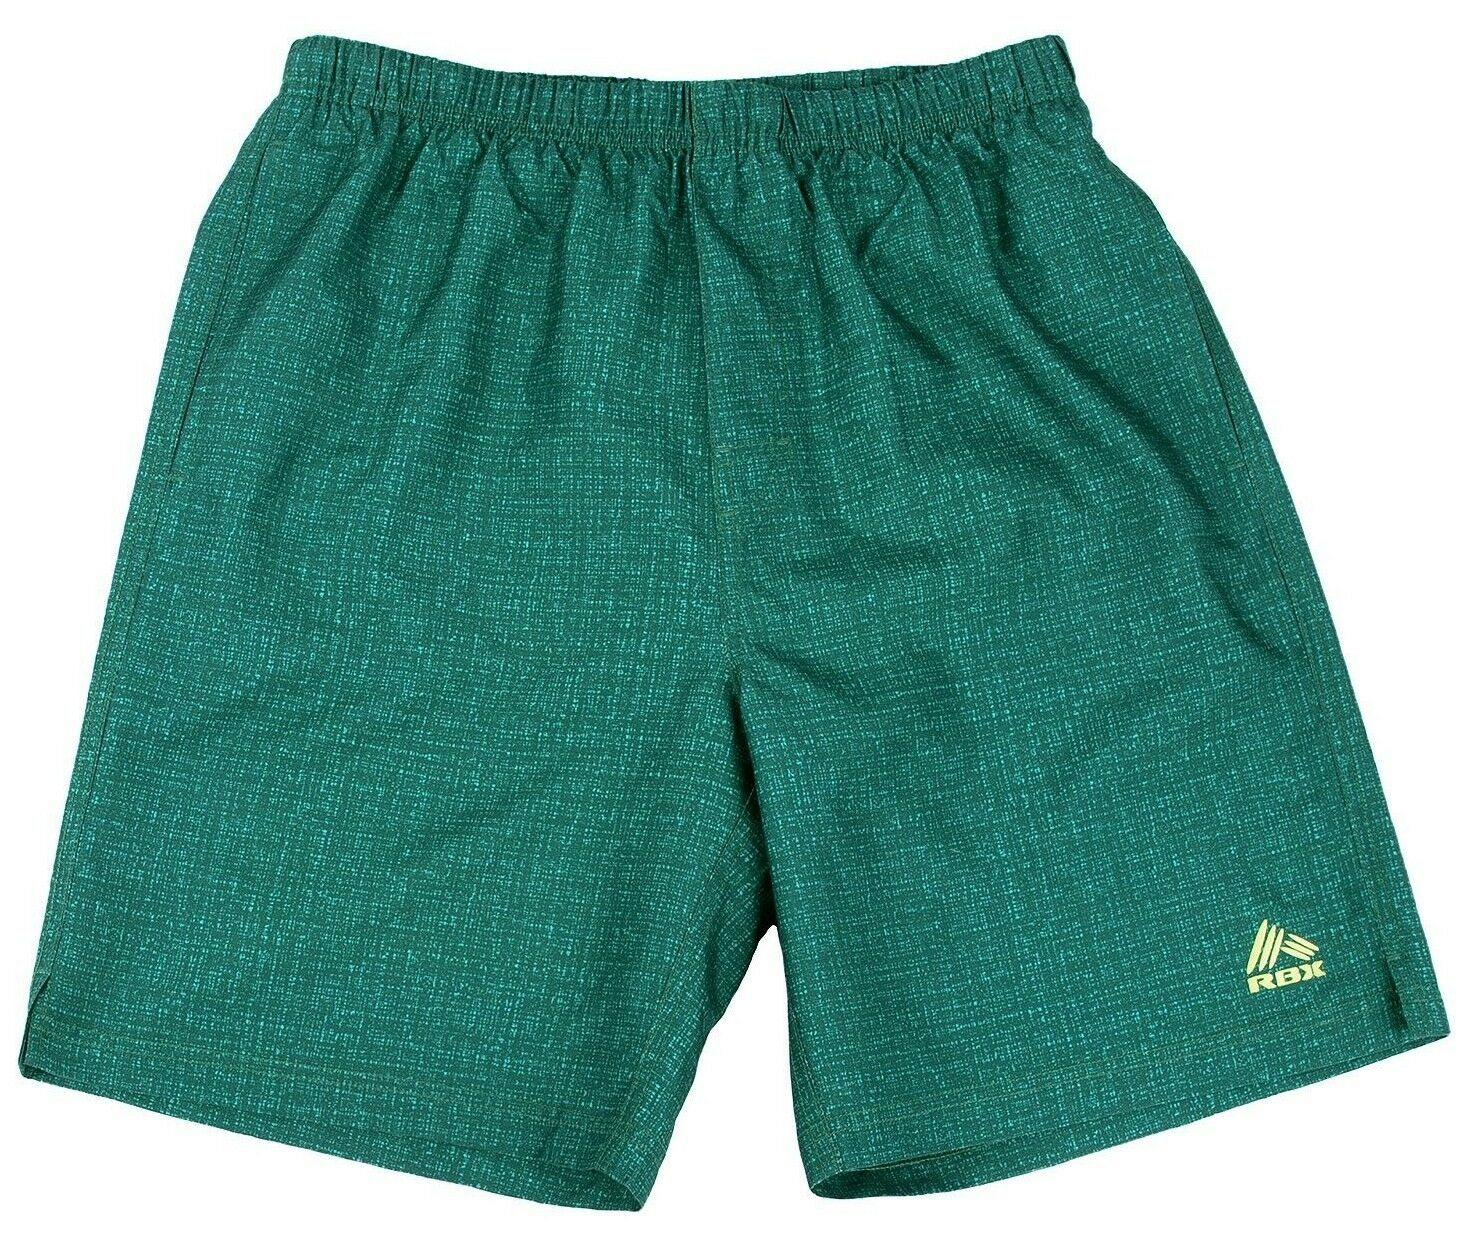 RBX Gym 'N Swim Men's Compression Lined Bathing Fitness Trunks Shorts S Grn NWT